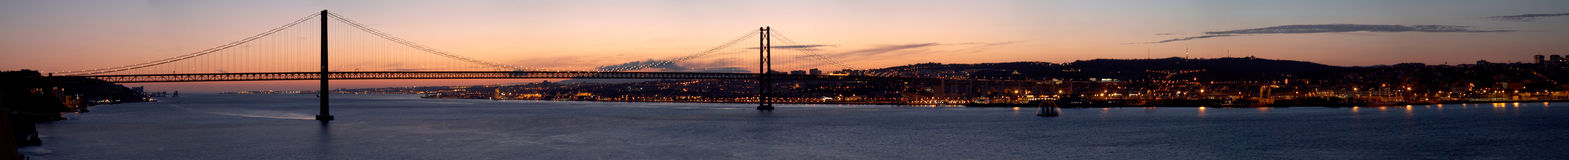 Panorama da ponte 25 de Abril Lisboa, Portugal Imagem de Stock Royalty Free